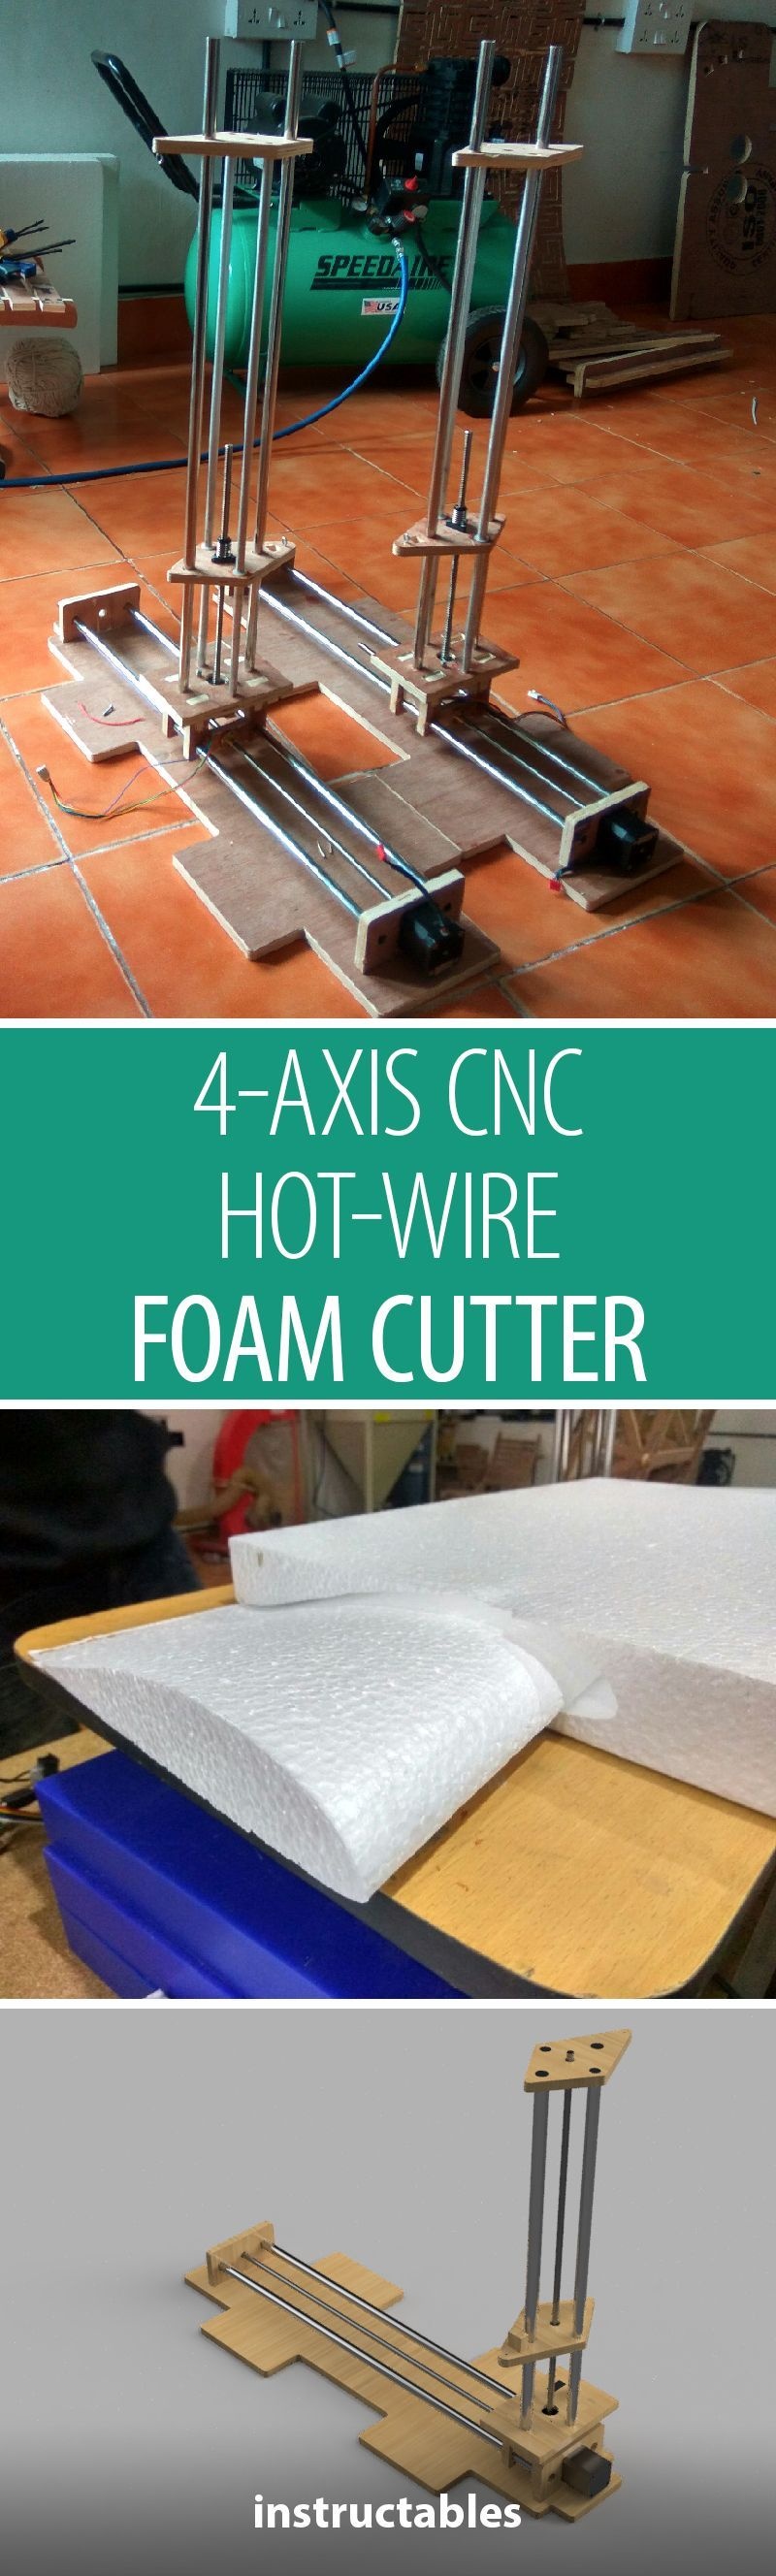 4 Axis Cnc Hot Wire Foam Cutter Arduino Ramps14 Tools To Make Design Diagram Pinterest And